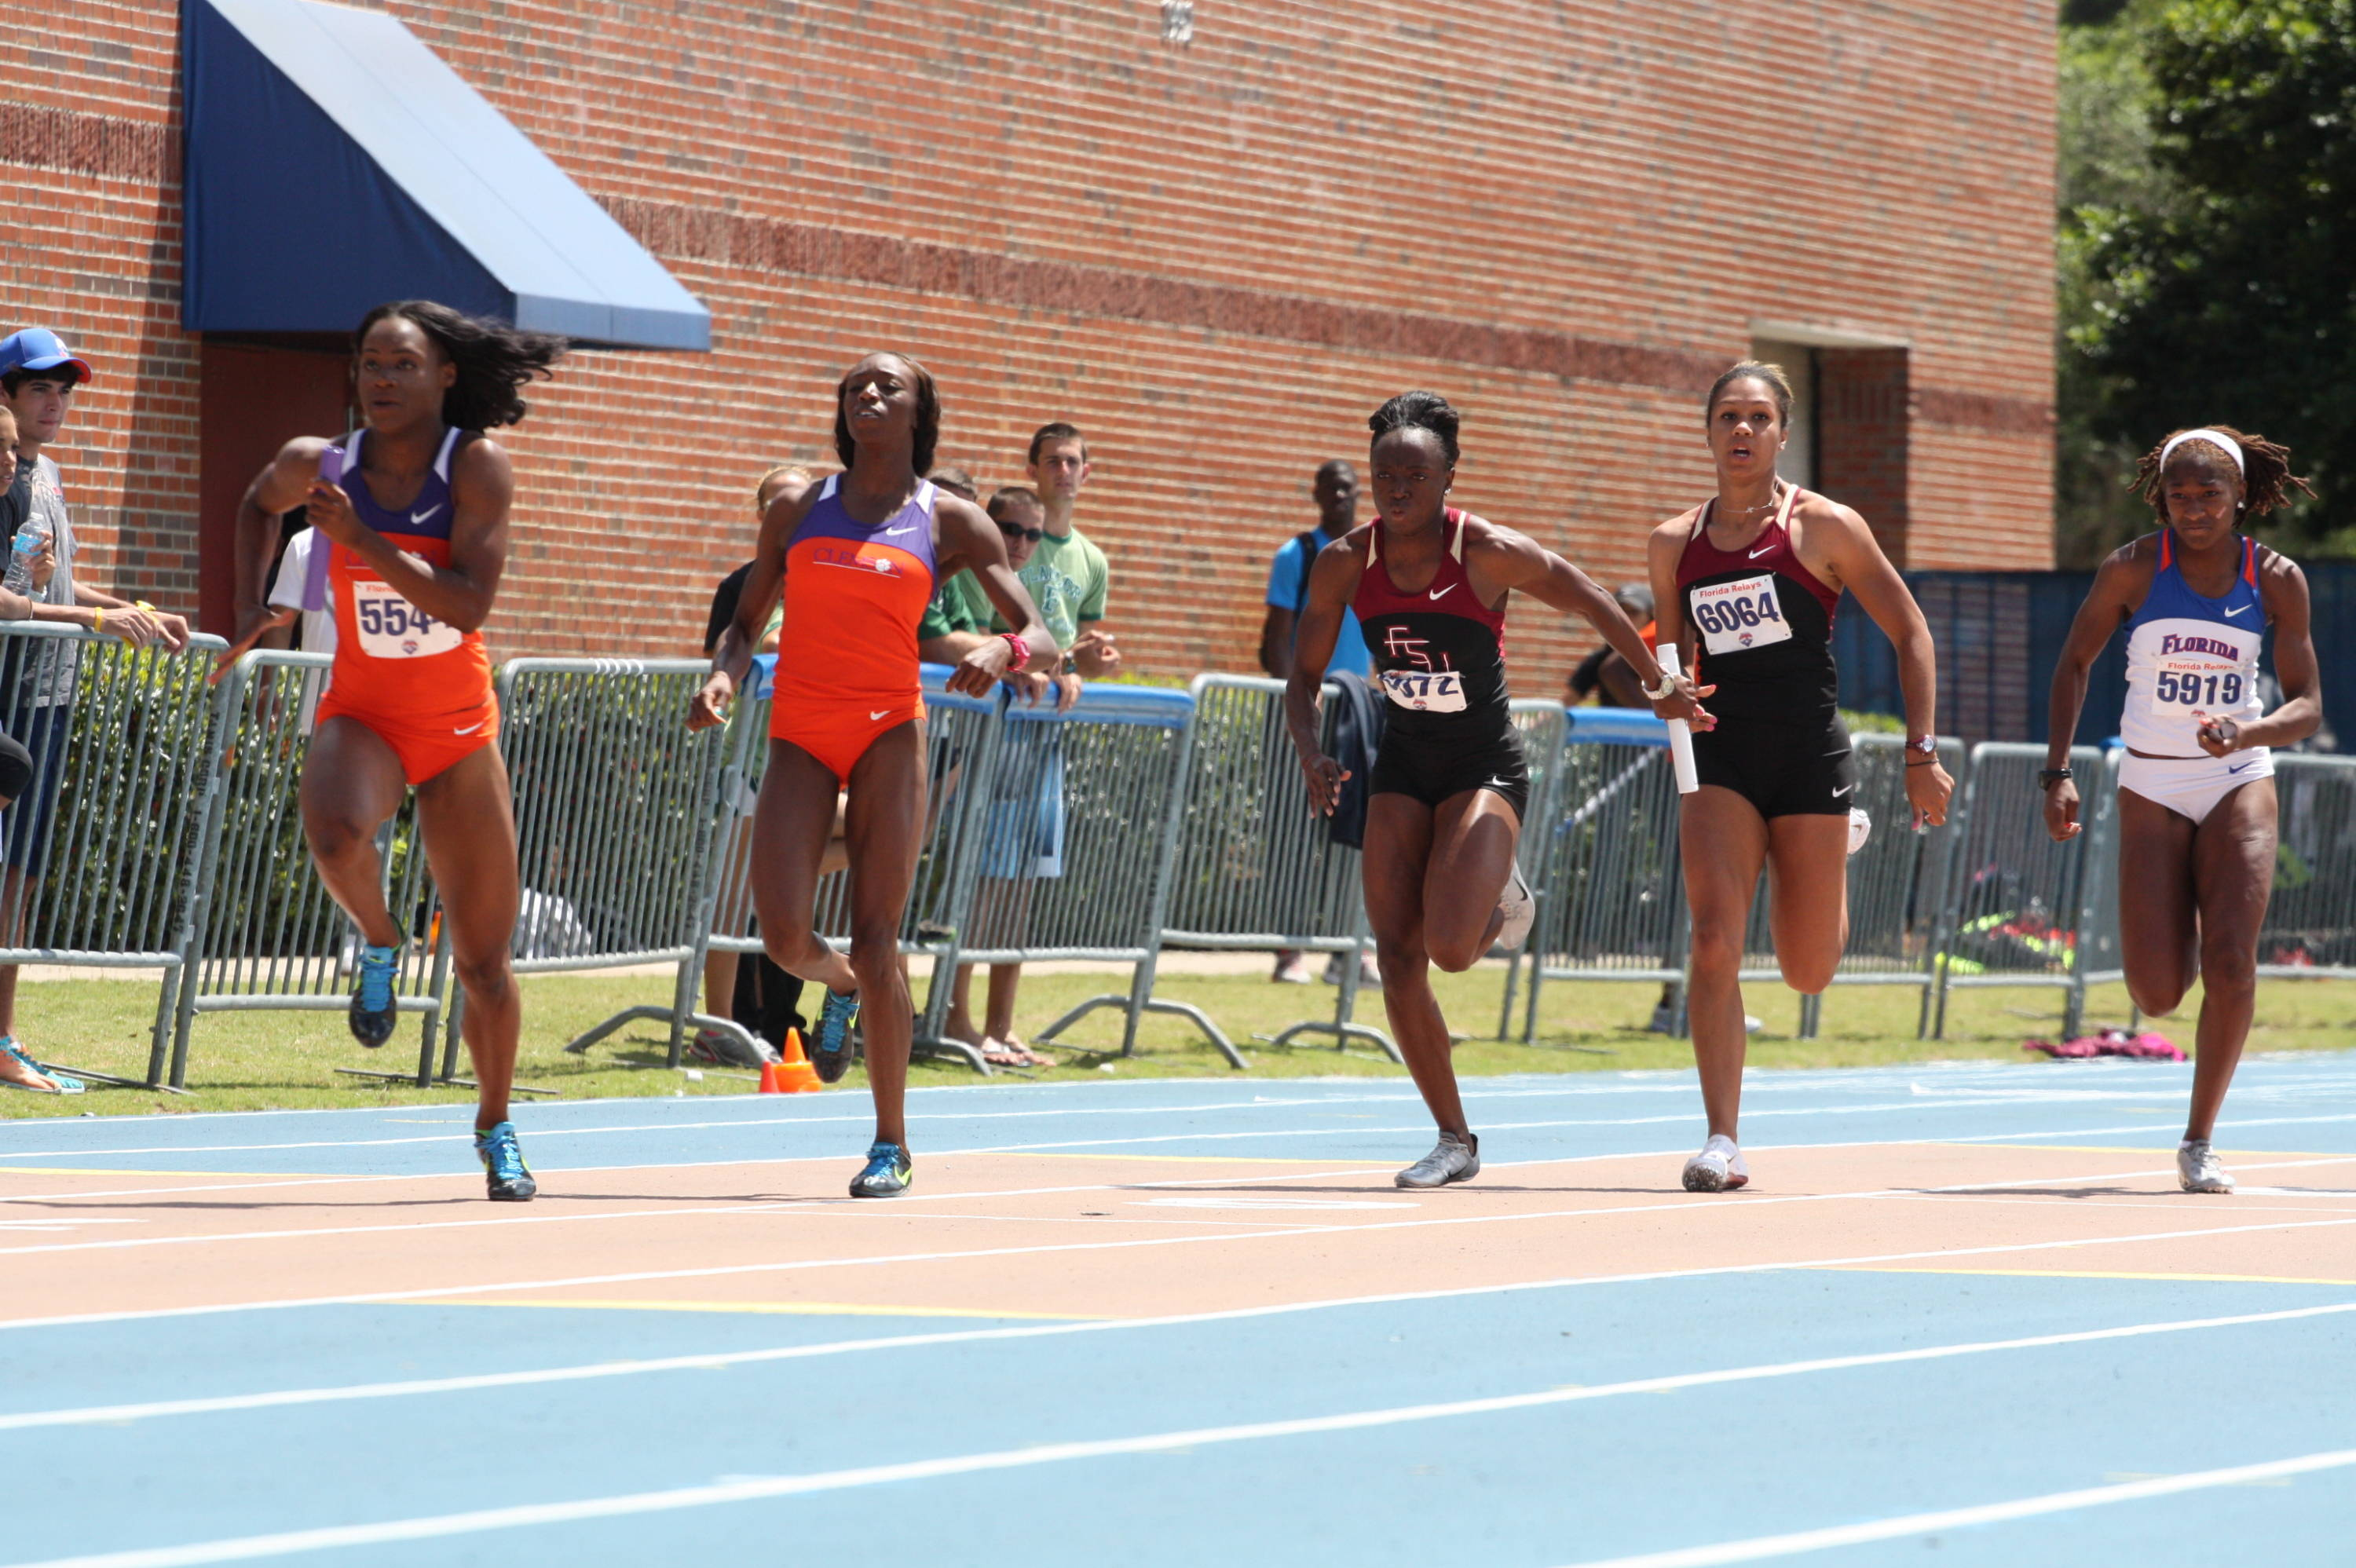 Marecia Pemberton gets the baton from Amy Harris and as the 'Noles are flanked by Clemson and Florida in the 4x100.